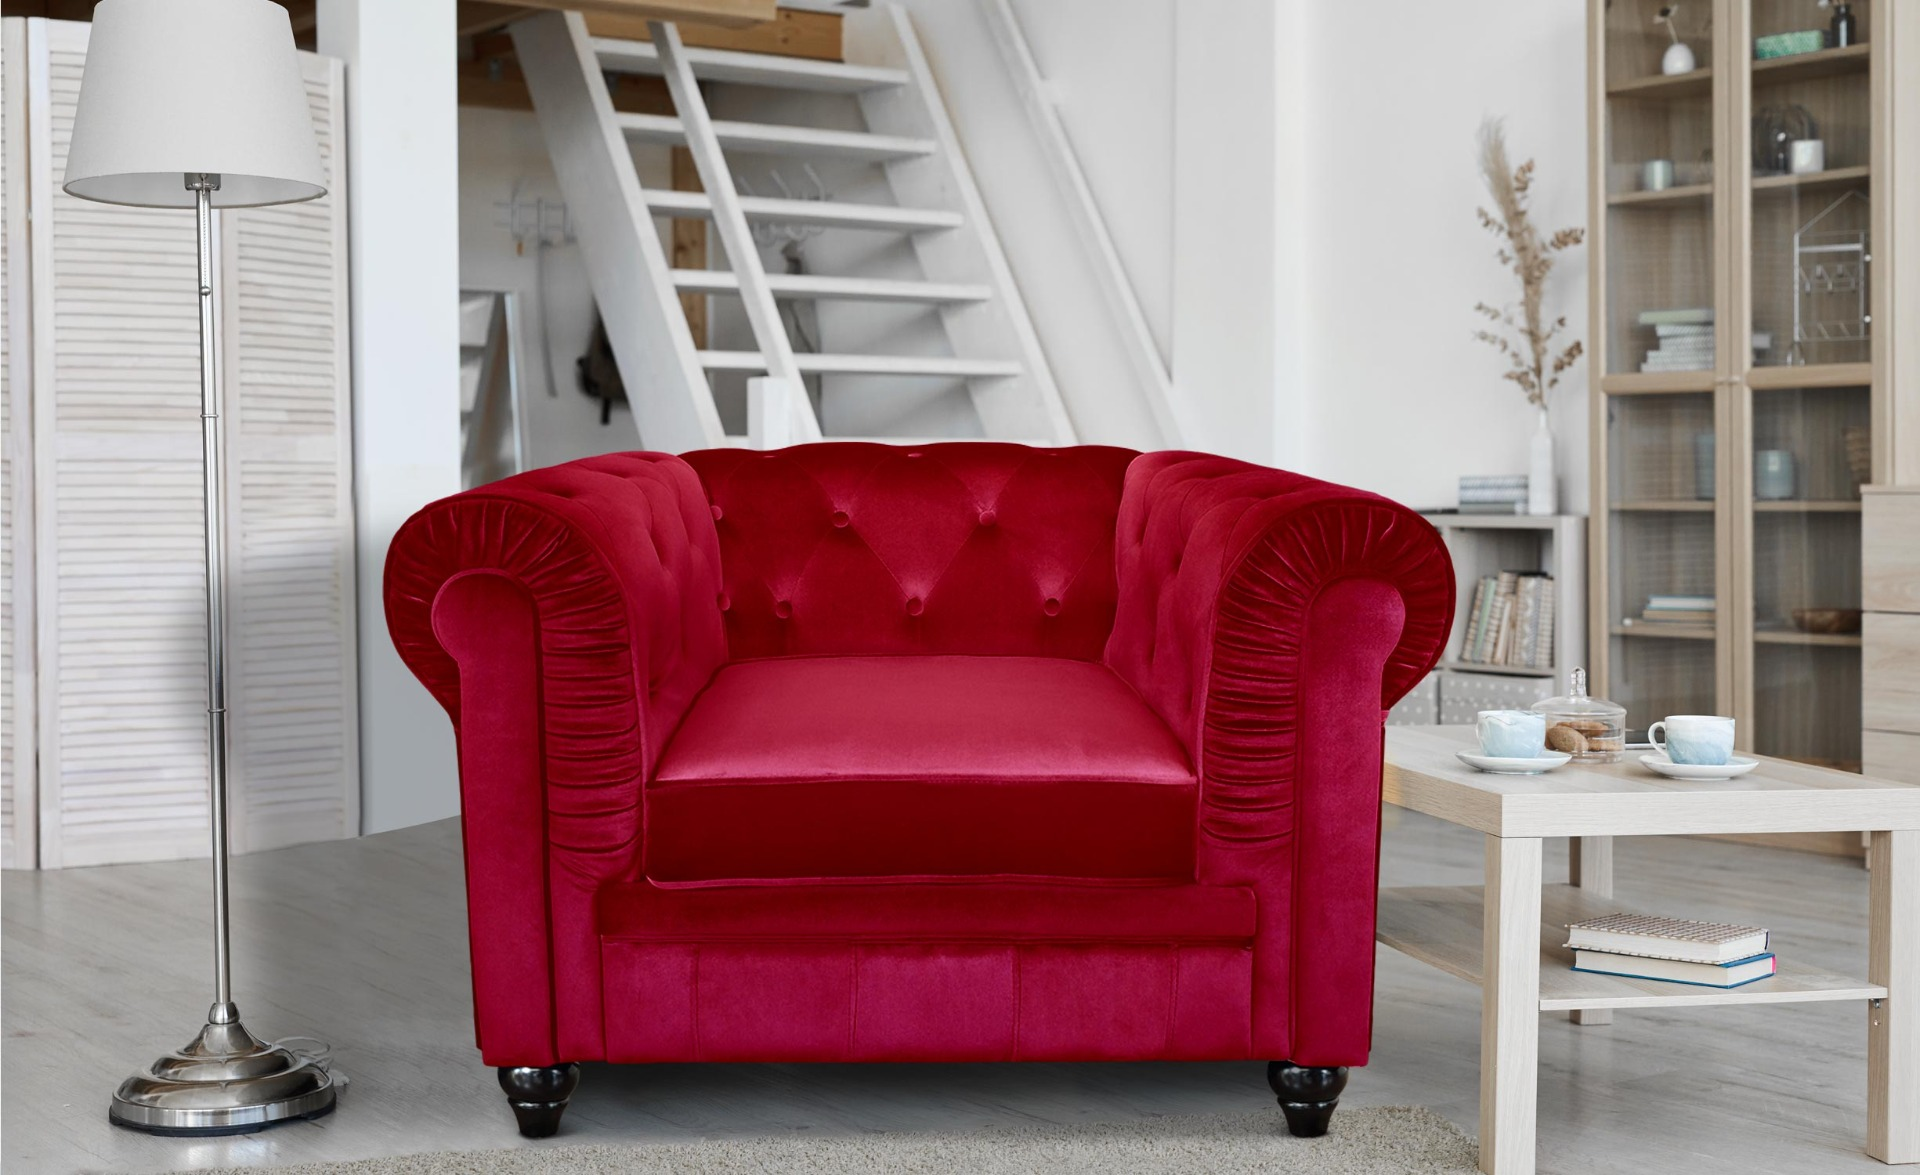 Grand fauteuil Chesterfield velours Rouge